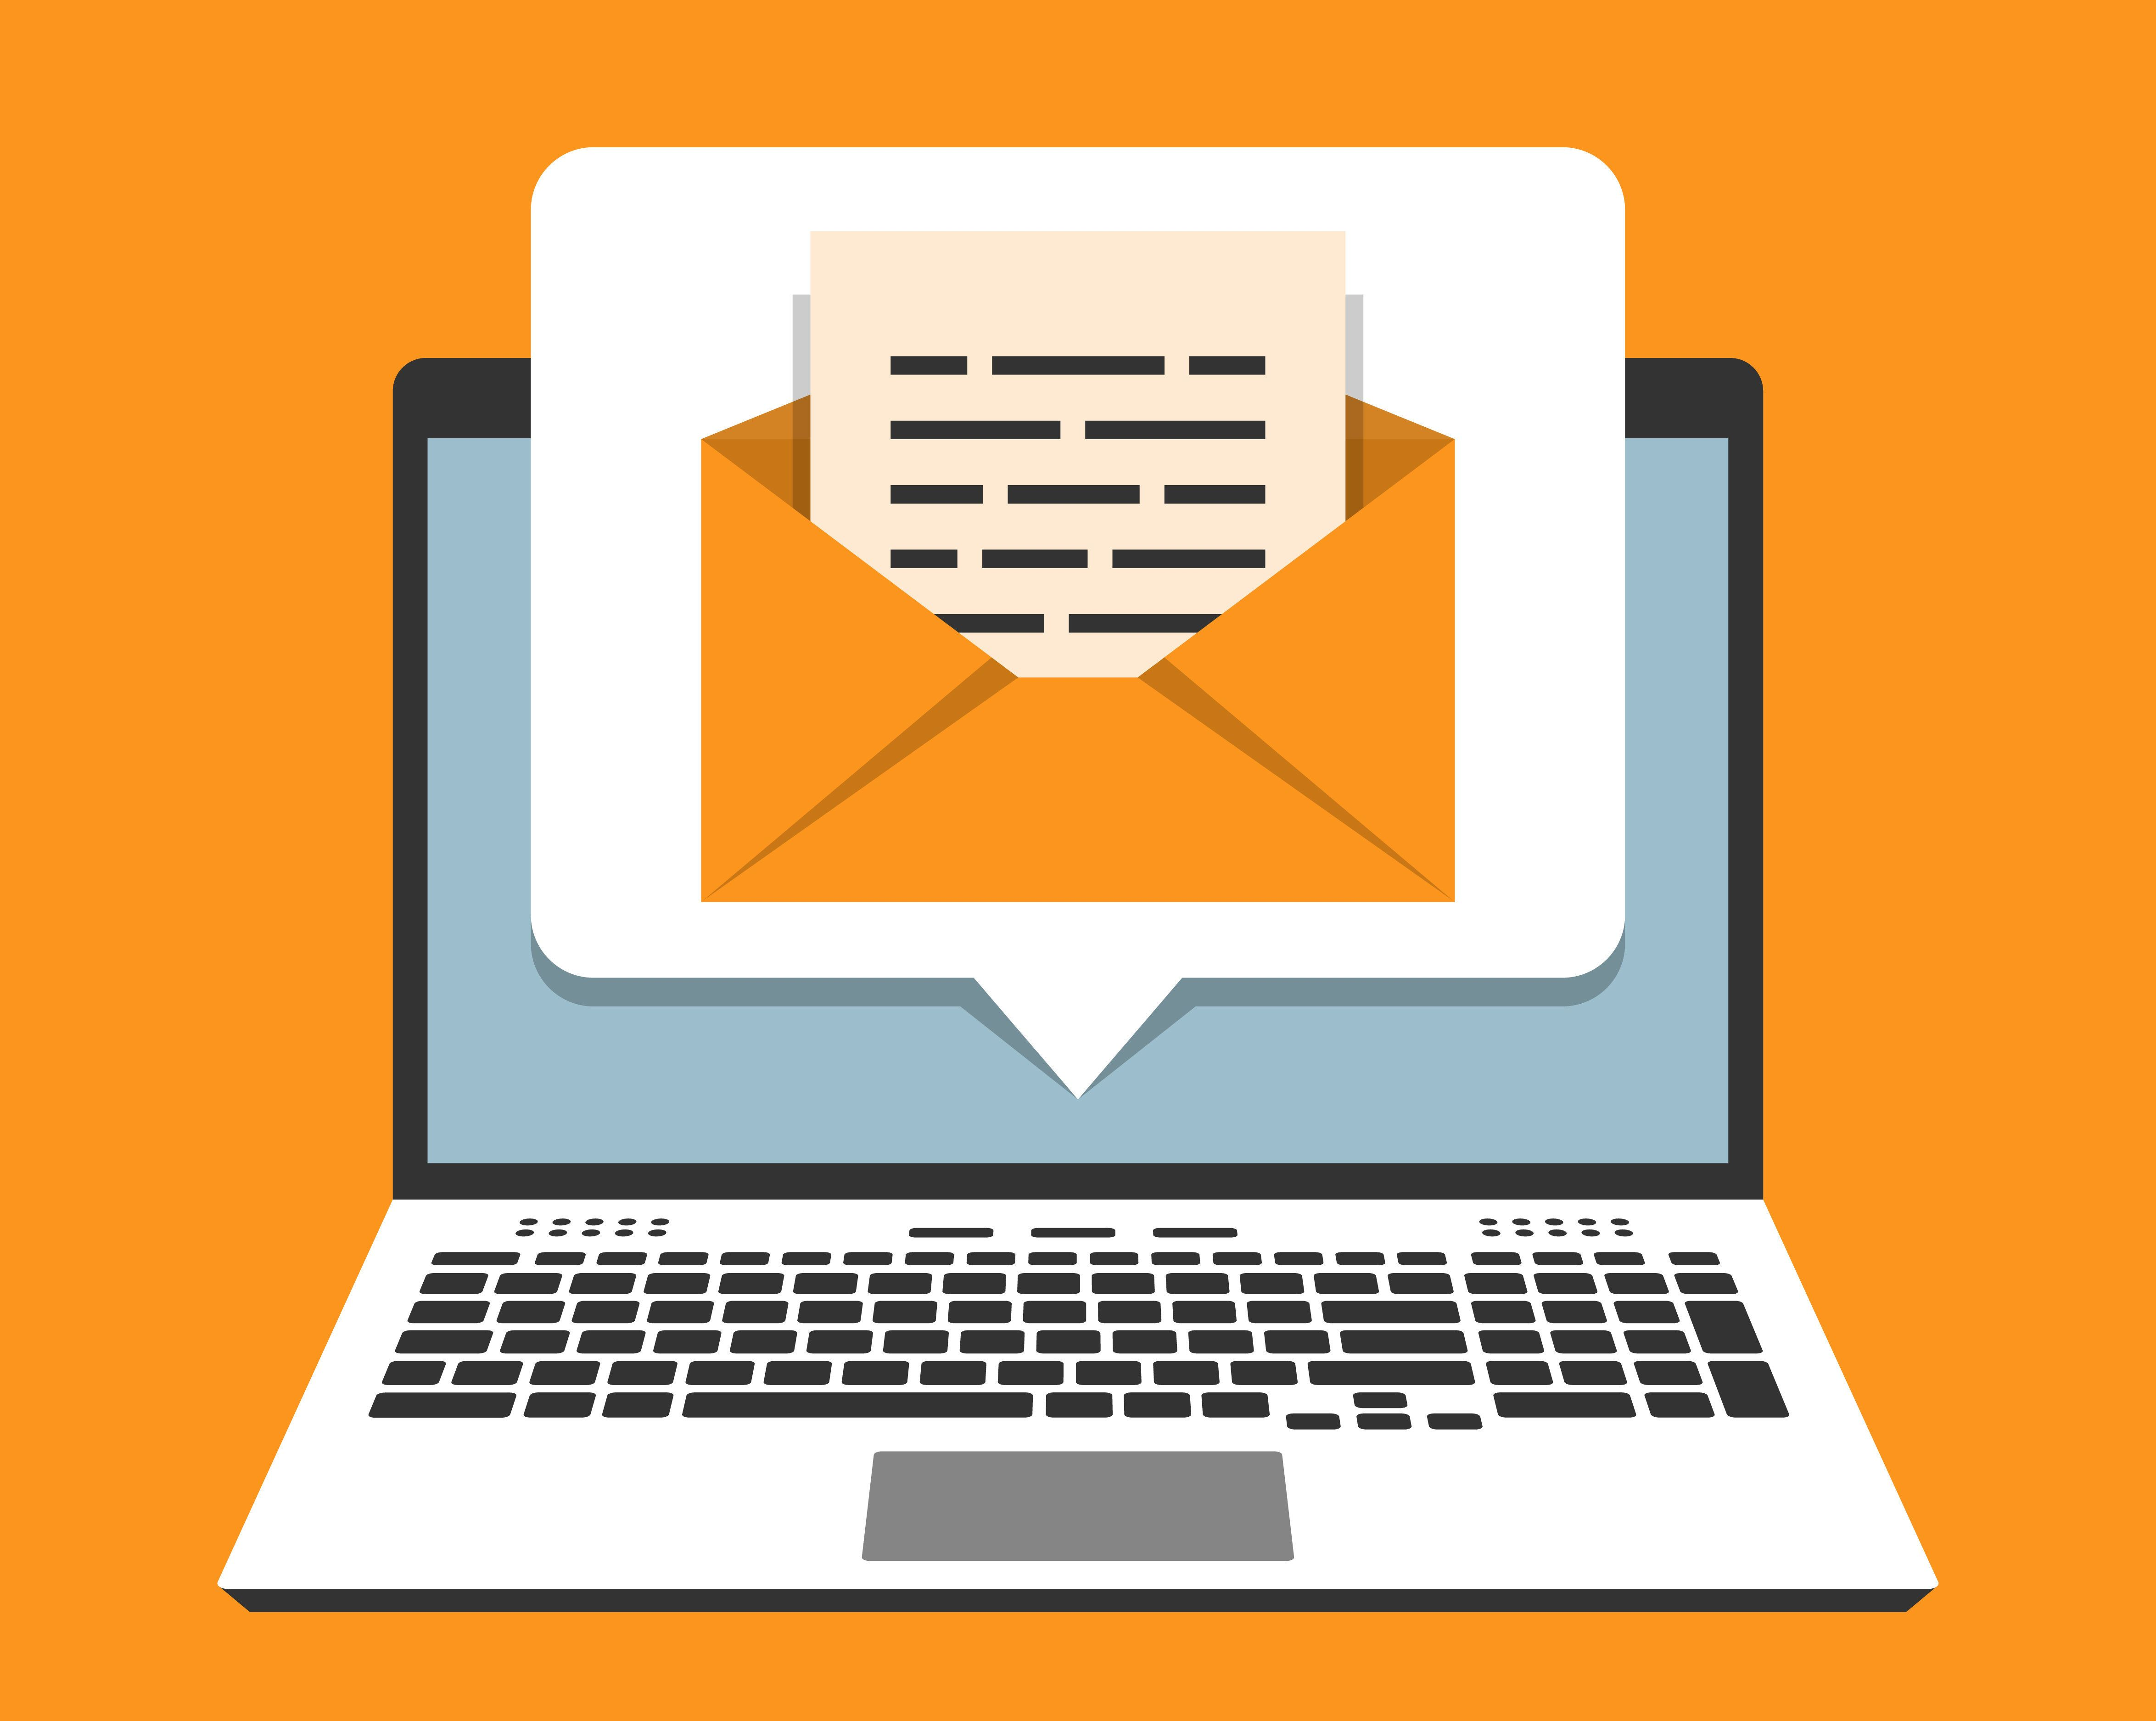 Email trackers are widespread, but there are ways to block their use in your inbox.